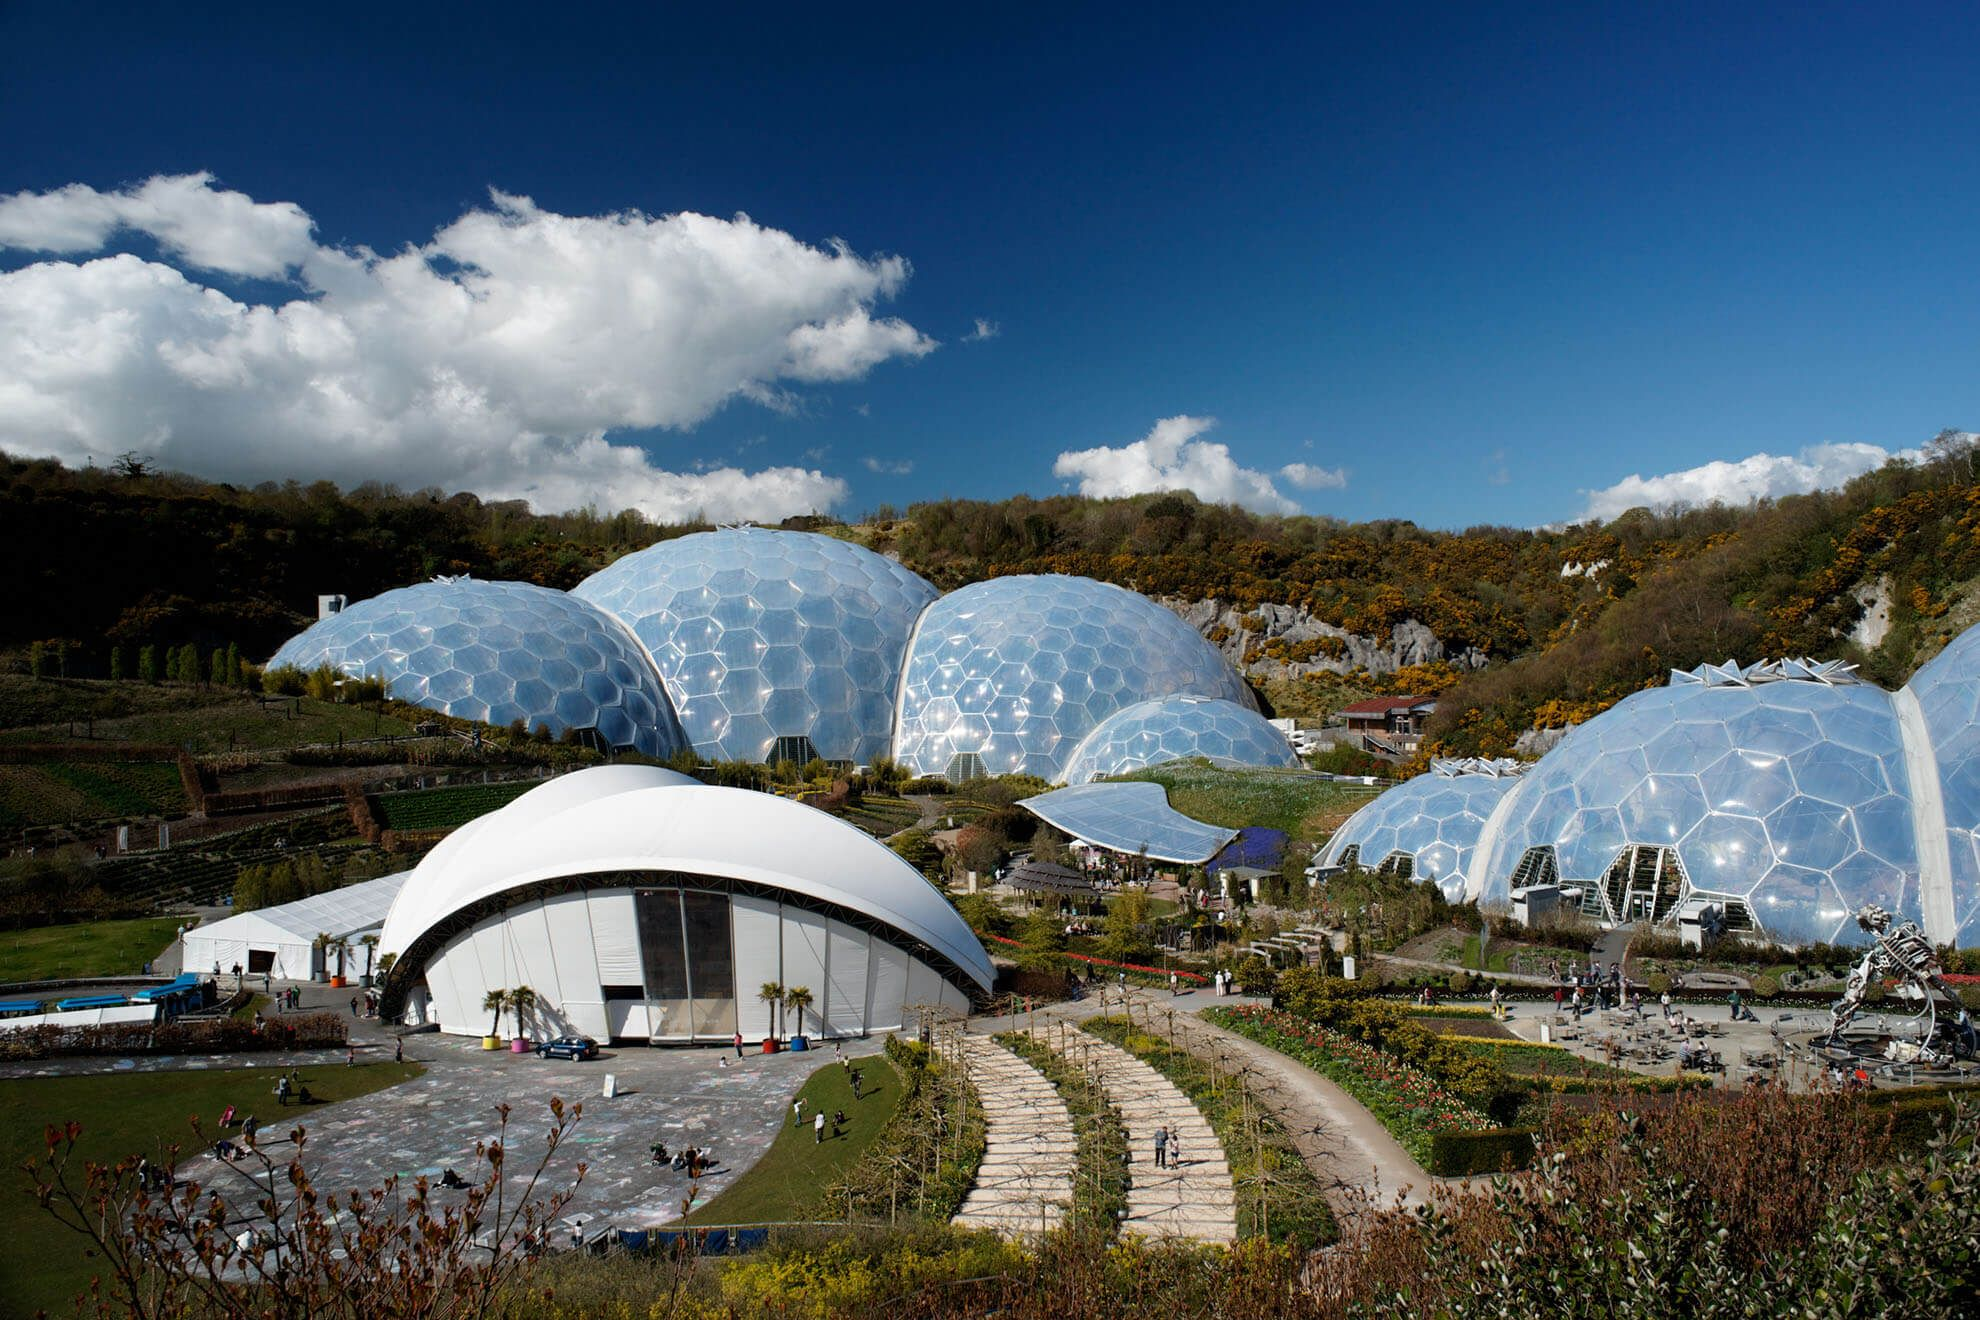 The Eden Project is only half an hour's drive away